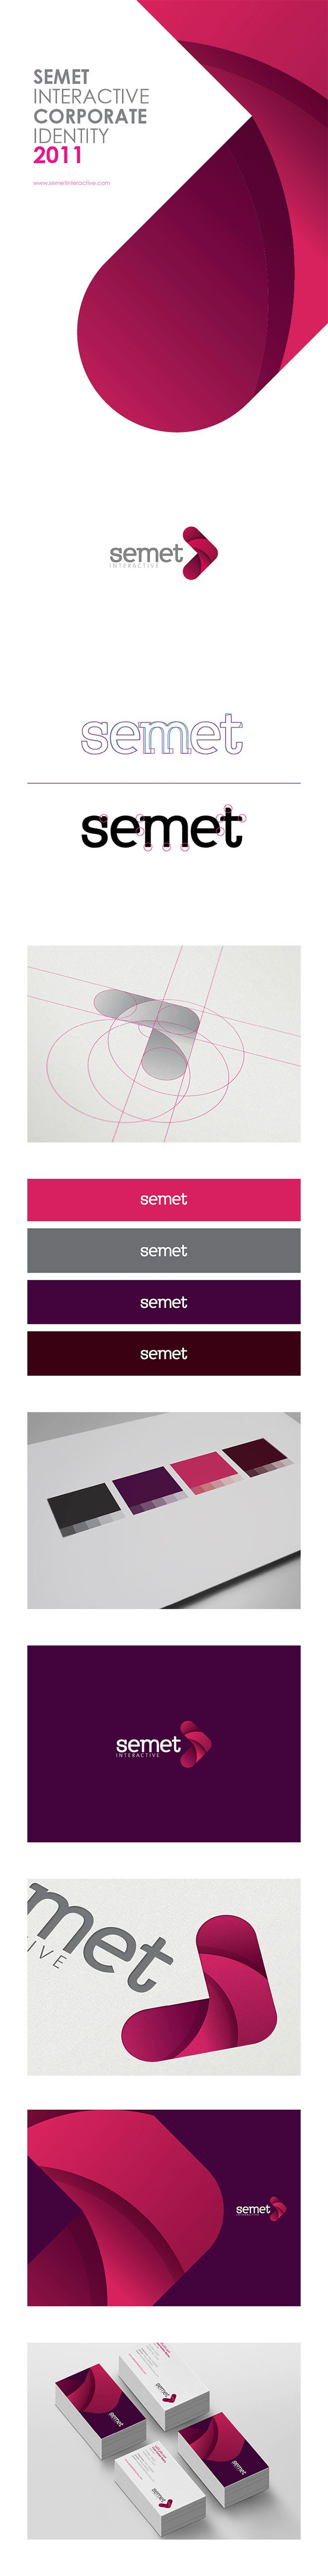 Semet Identity by Mohd Almousa